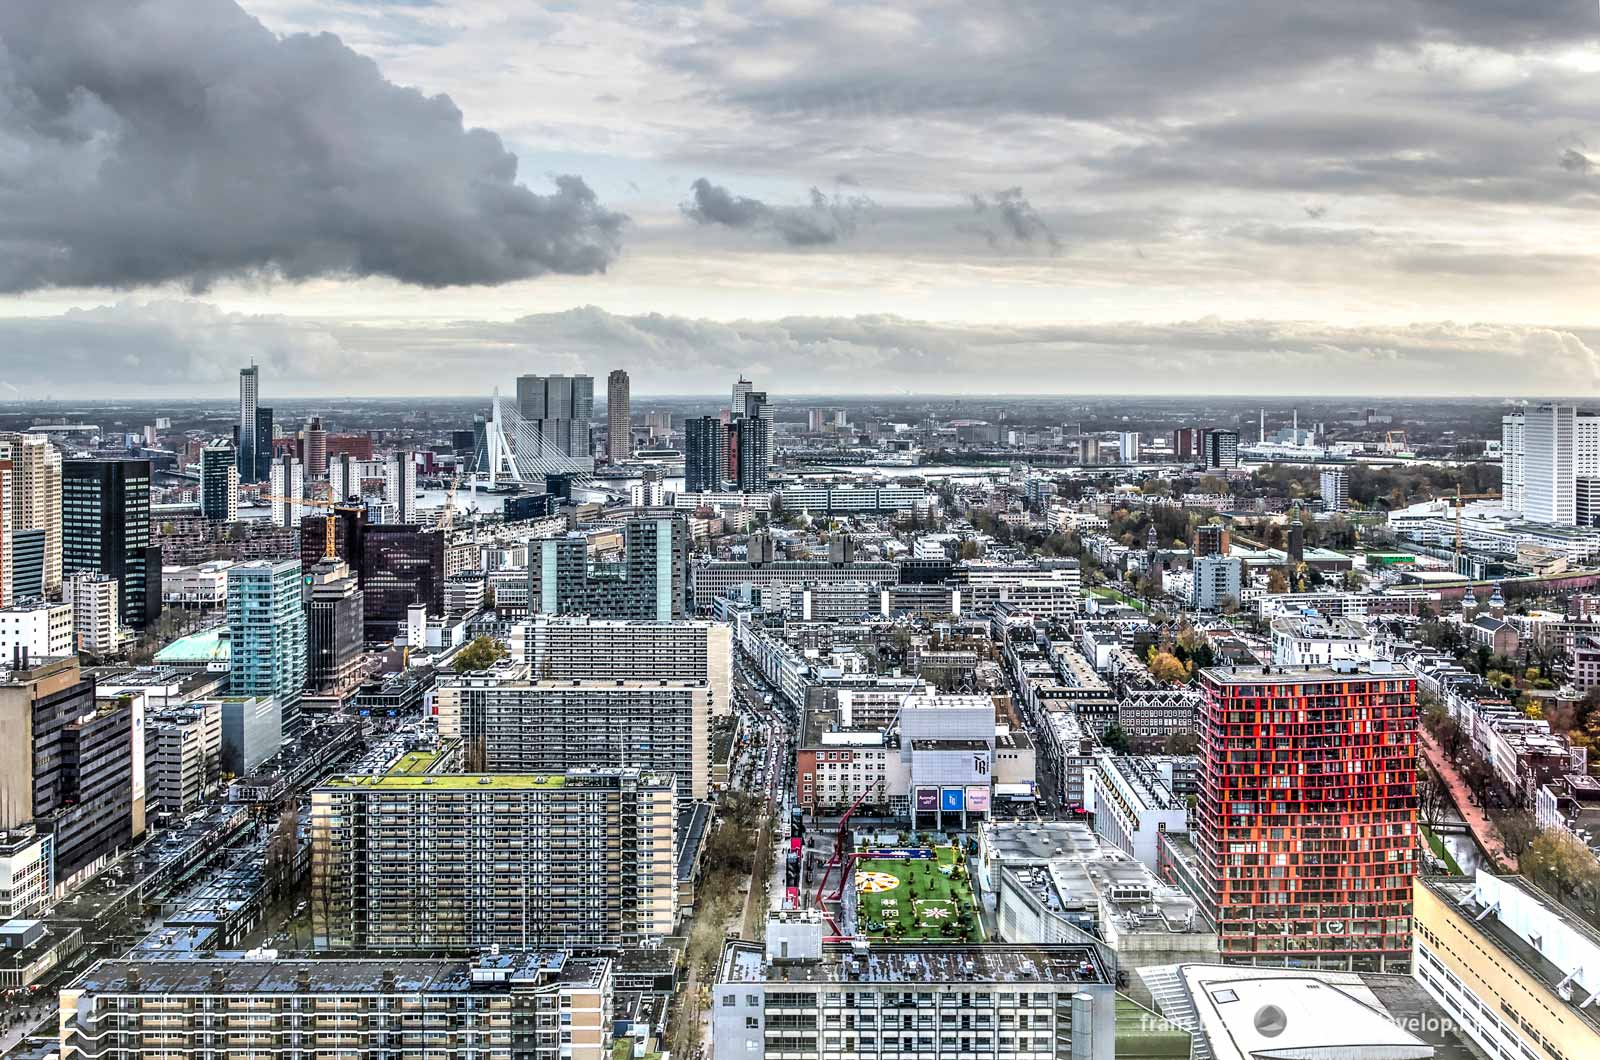 The city center of Rotterdam, seen from the Delftse Poort building in the direction of the Southbank and Erasmus Bridge